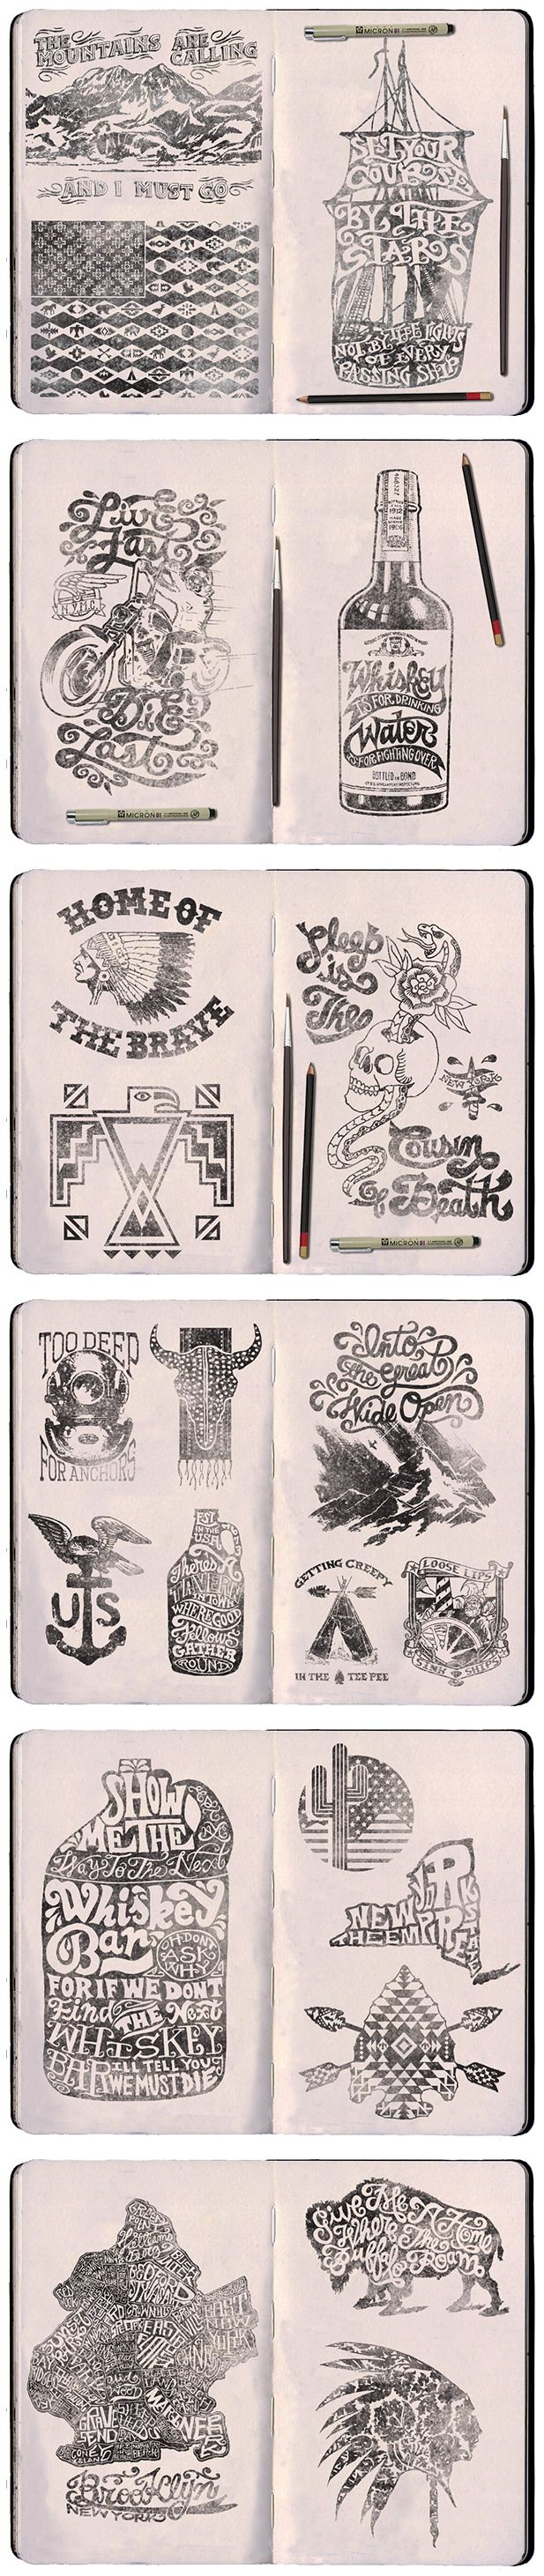 TRAVOIS GOODS COMPANY sketches